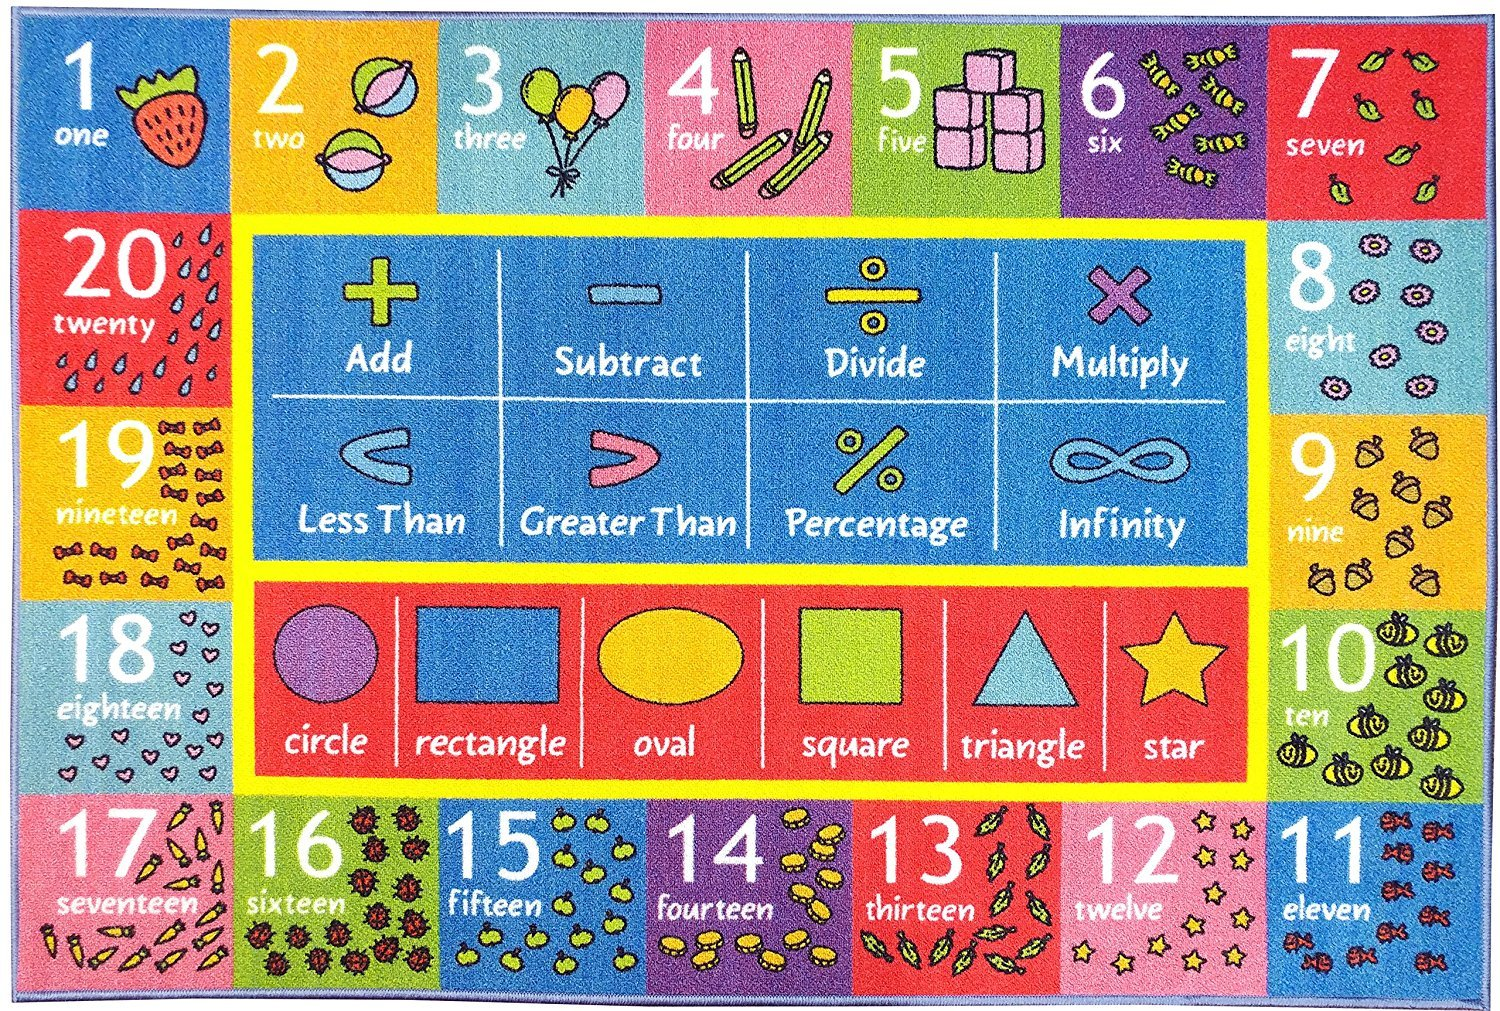 KC Cubs Playtime Collection Math Symbols, Numbers and Shapes Educational Learning Area Rug Carpet for Kids and Children Bedroom and Playroom (5' 0'' x 6' 6'')